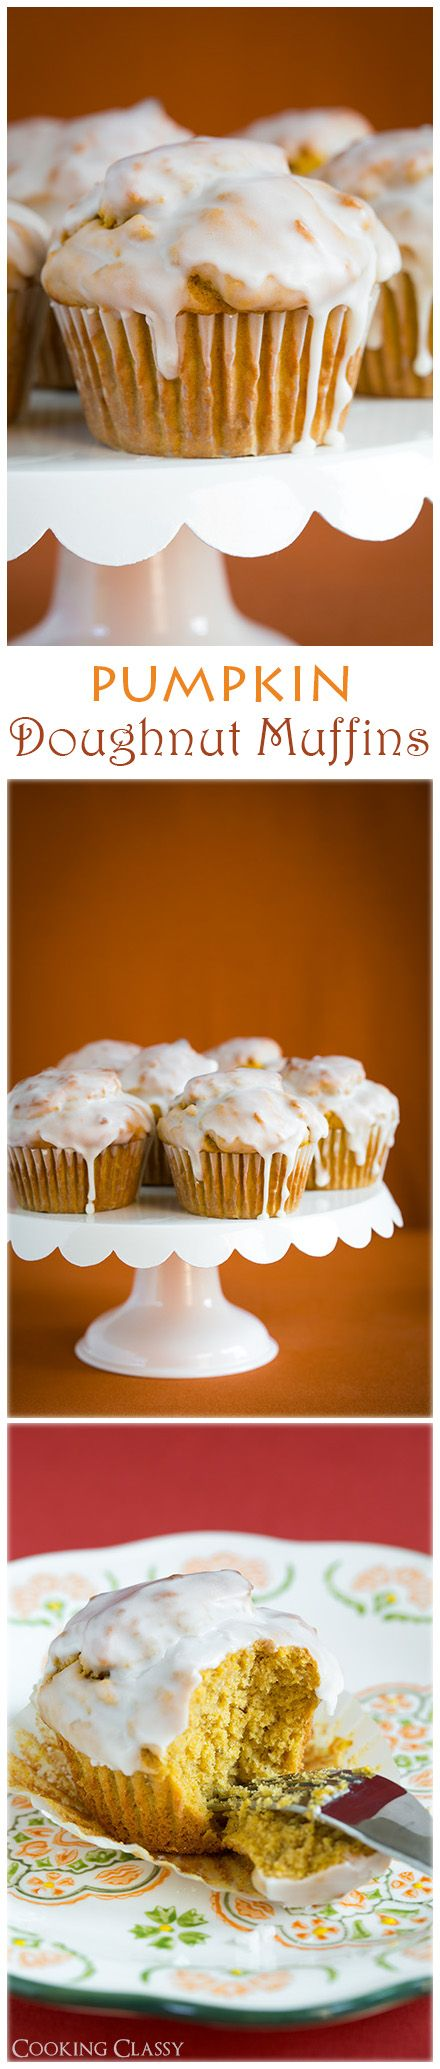 Pumpkin Doughnut Muffins with Vanilla Glaze - these muffins are TO. DIE. FOR.